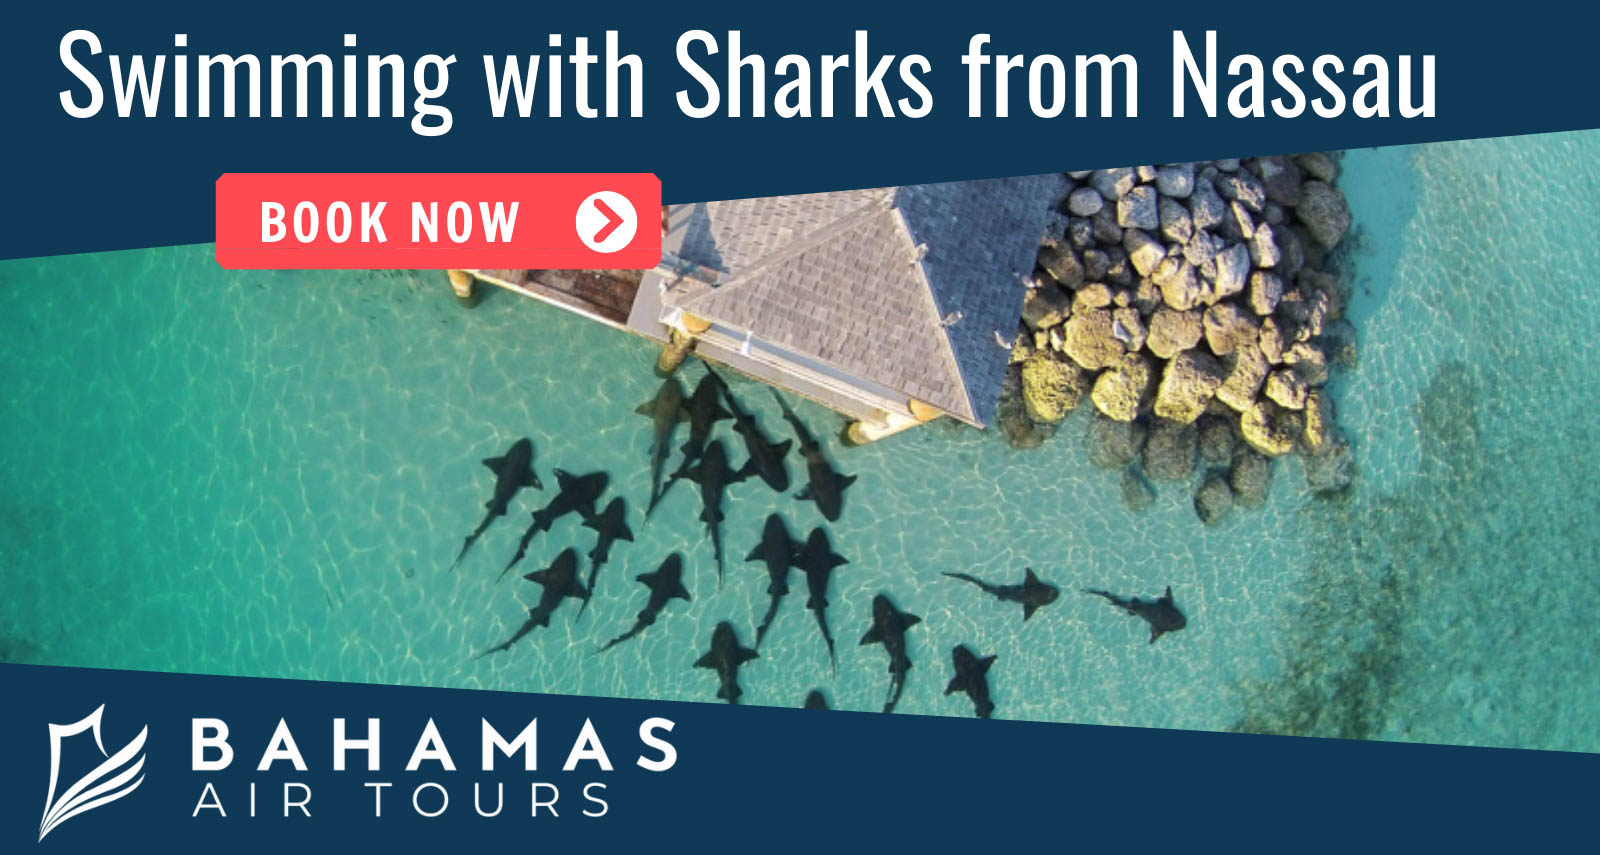 Swimming with sharks experience with Bahamas Air Tours. Bahamas day trips by plane.